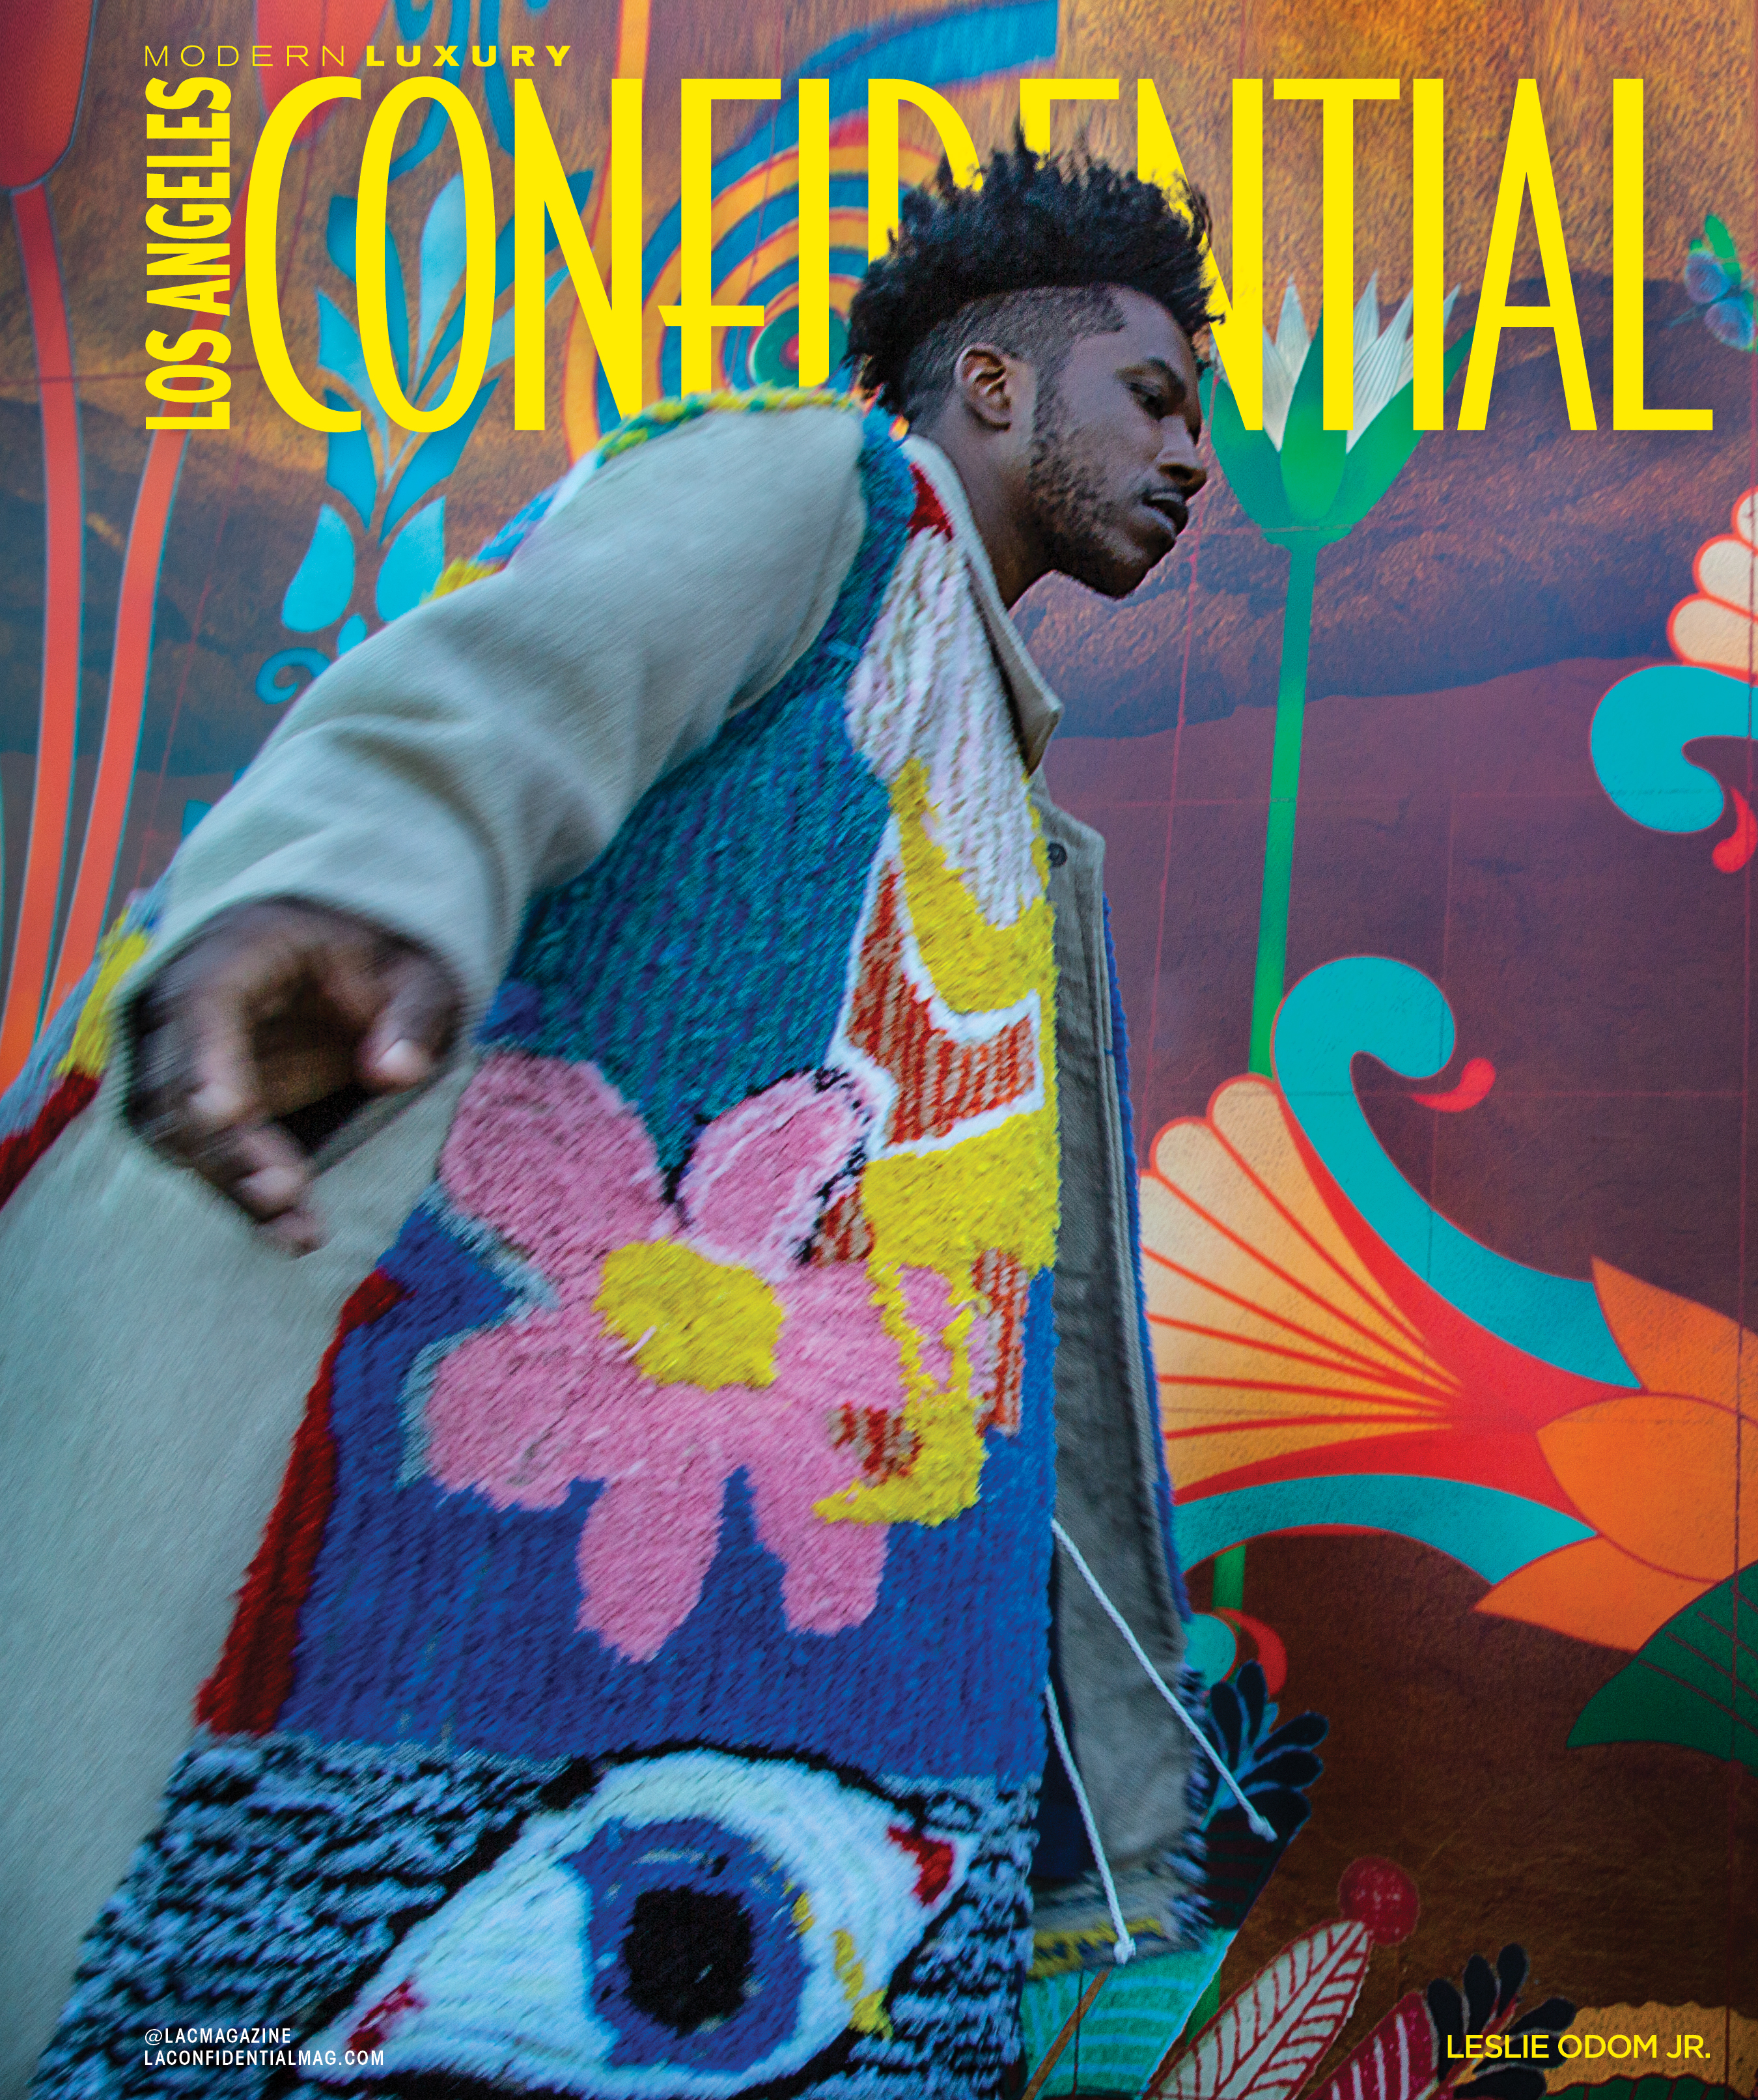 Leslie Odom Jr. on L.A. Confidential magazine cover.